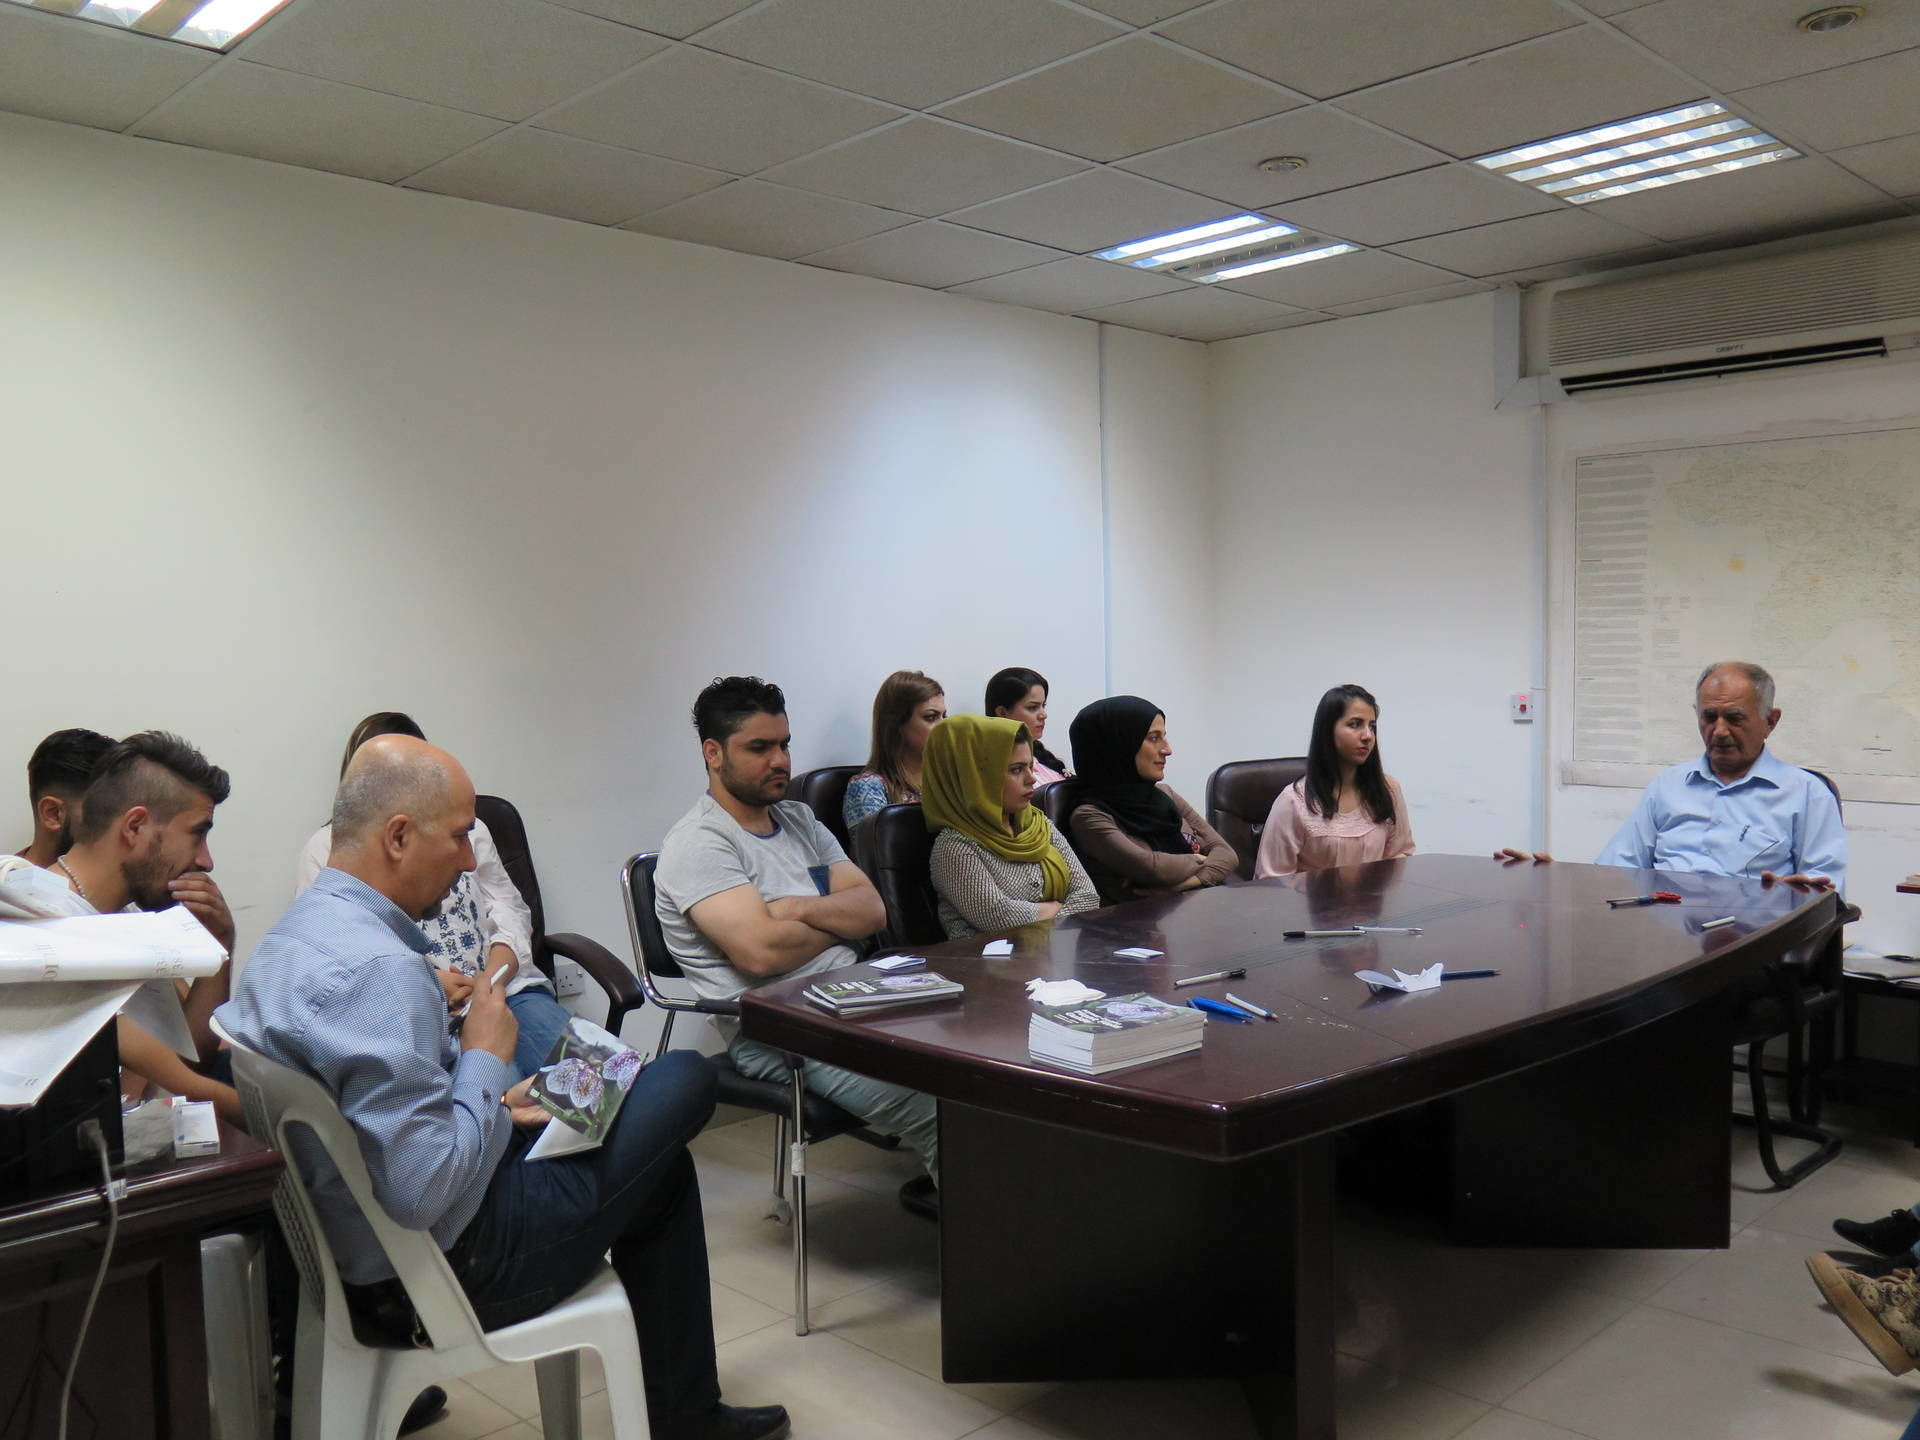 Dr. Ali Askari, BOD of the KBF gave a lecture to the students